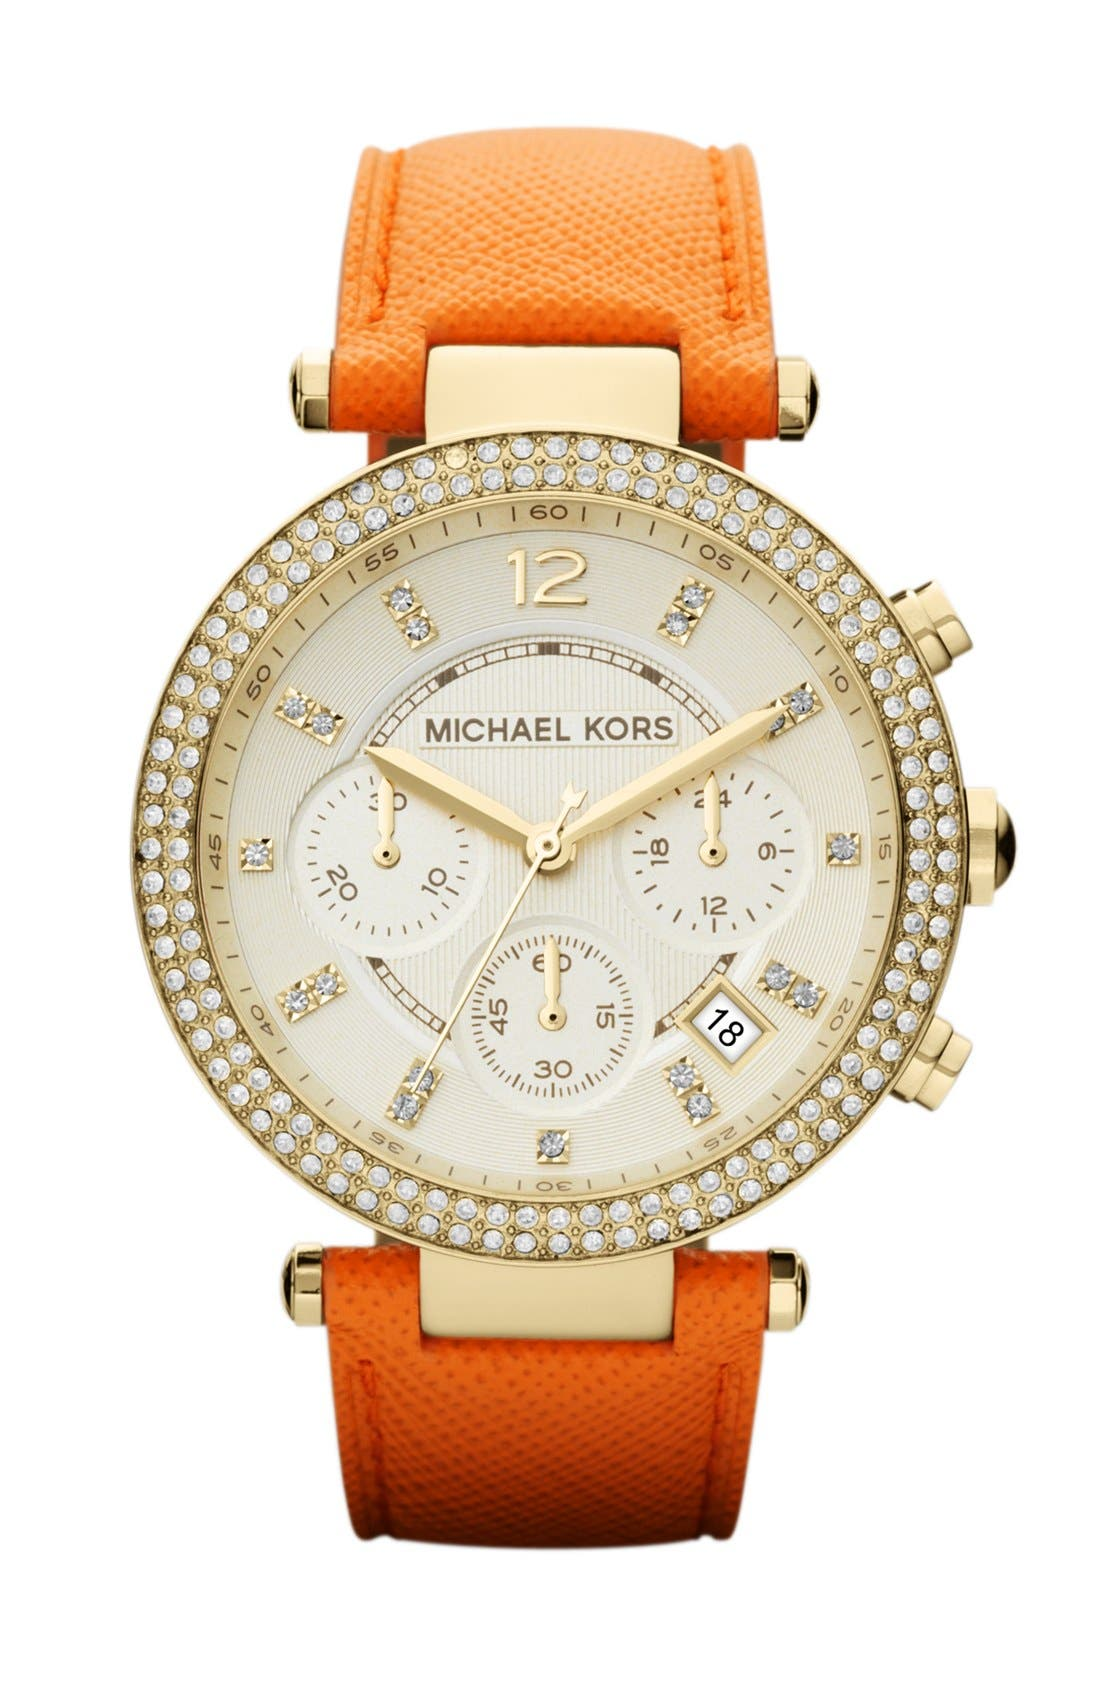 Main Image - Michael Kors 'Parker' Chronograph Leather Watch, 39mm